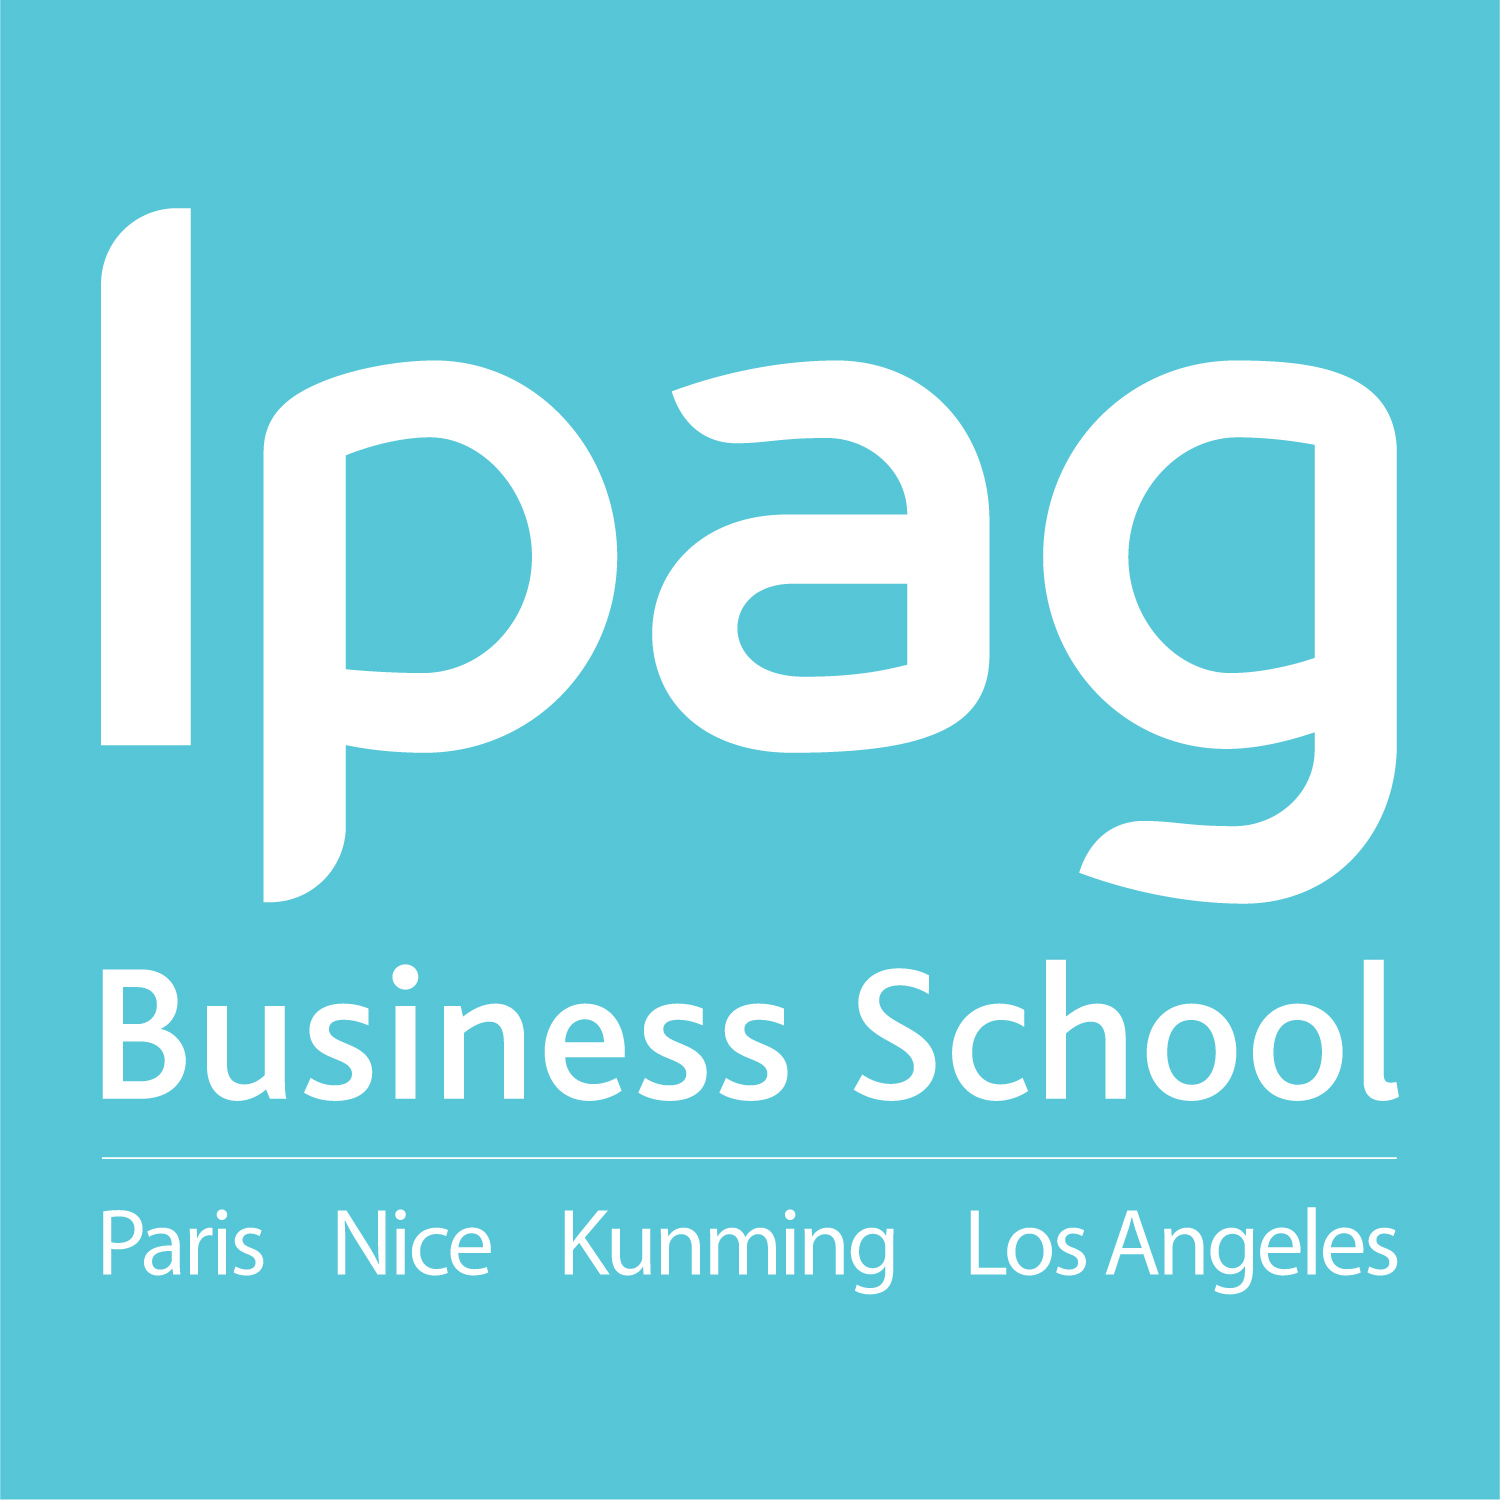 Ludmila, admise à l'IPAG Business School